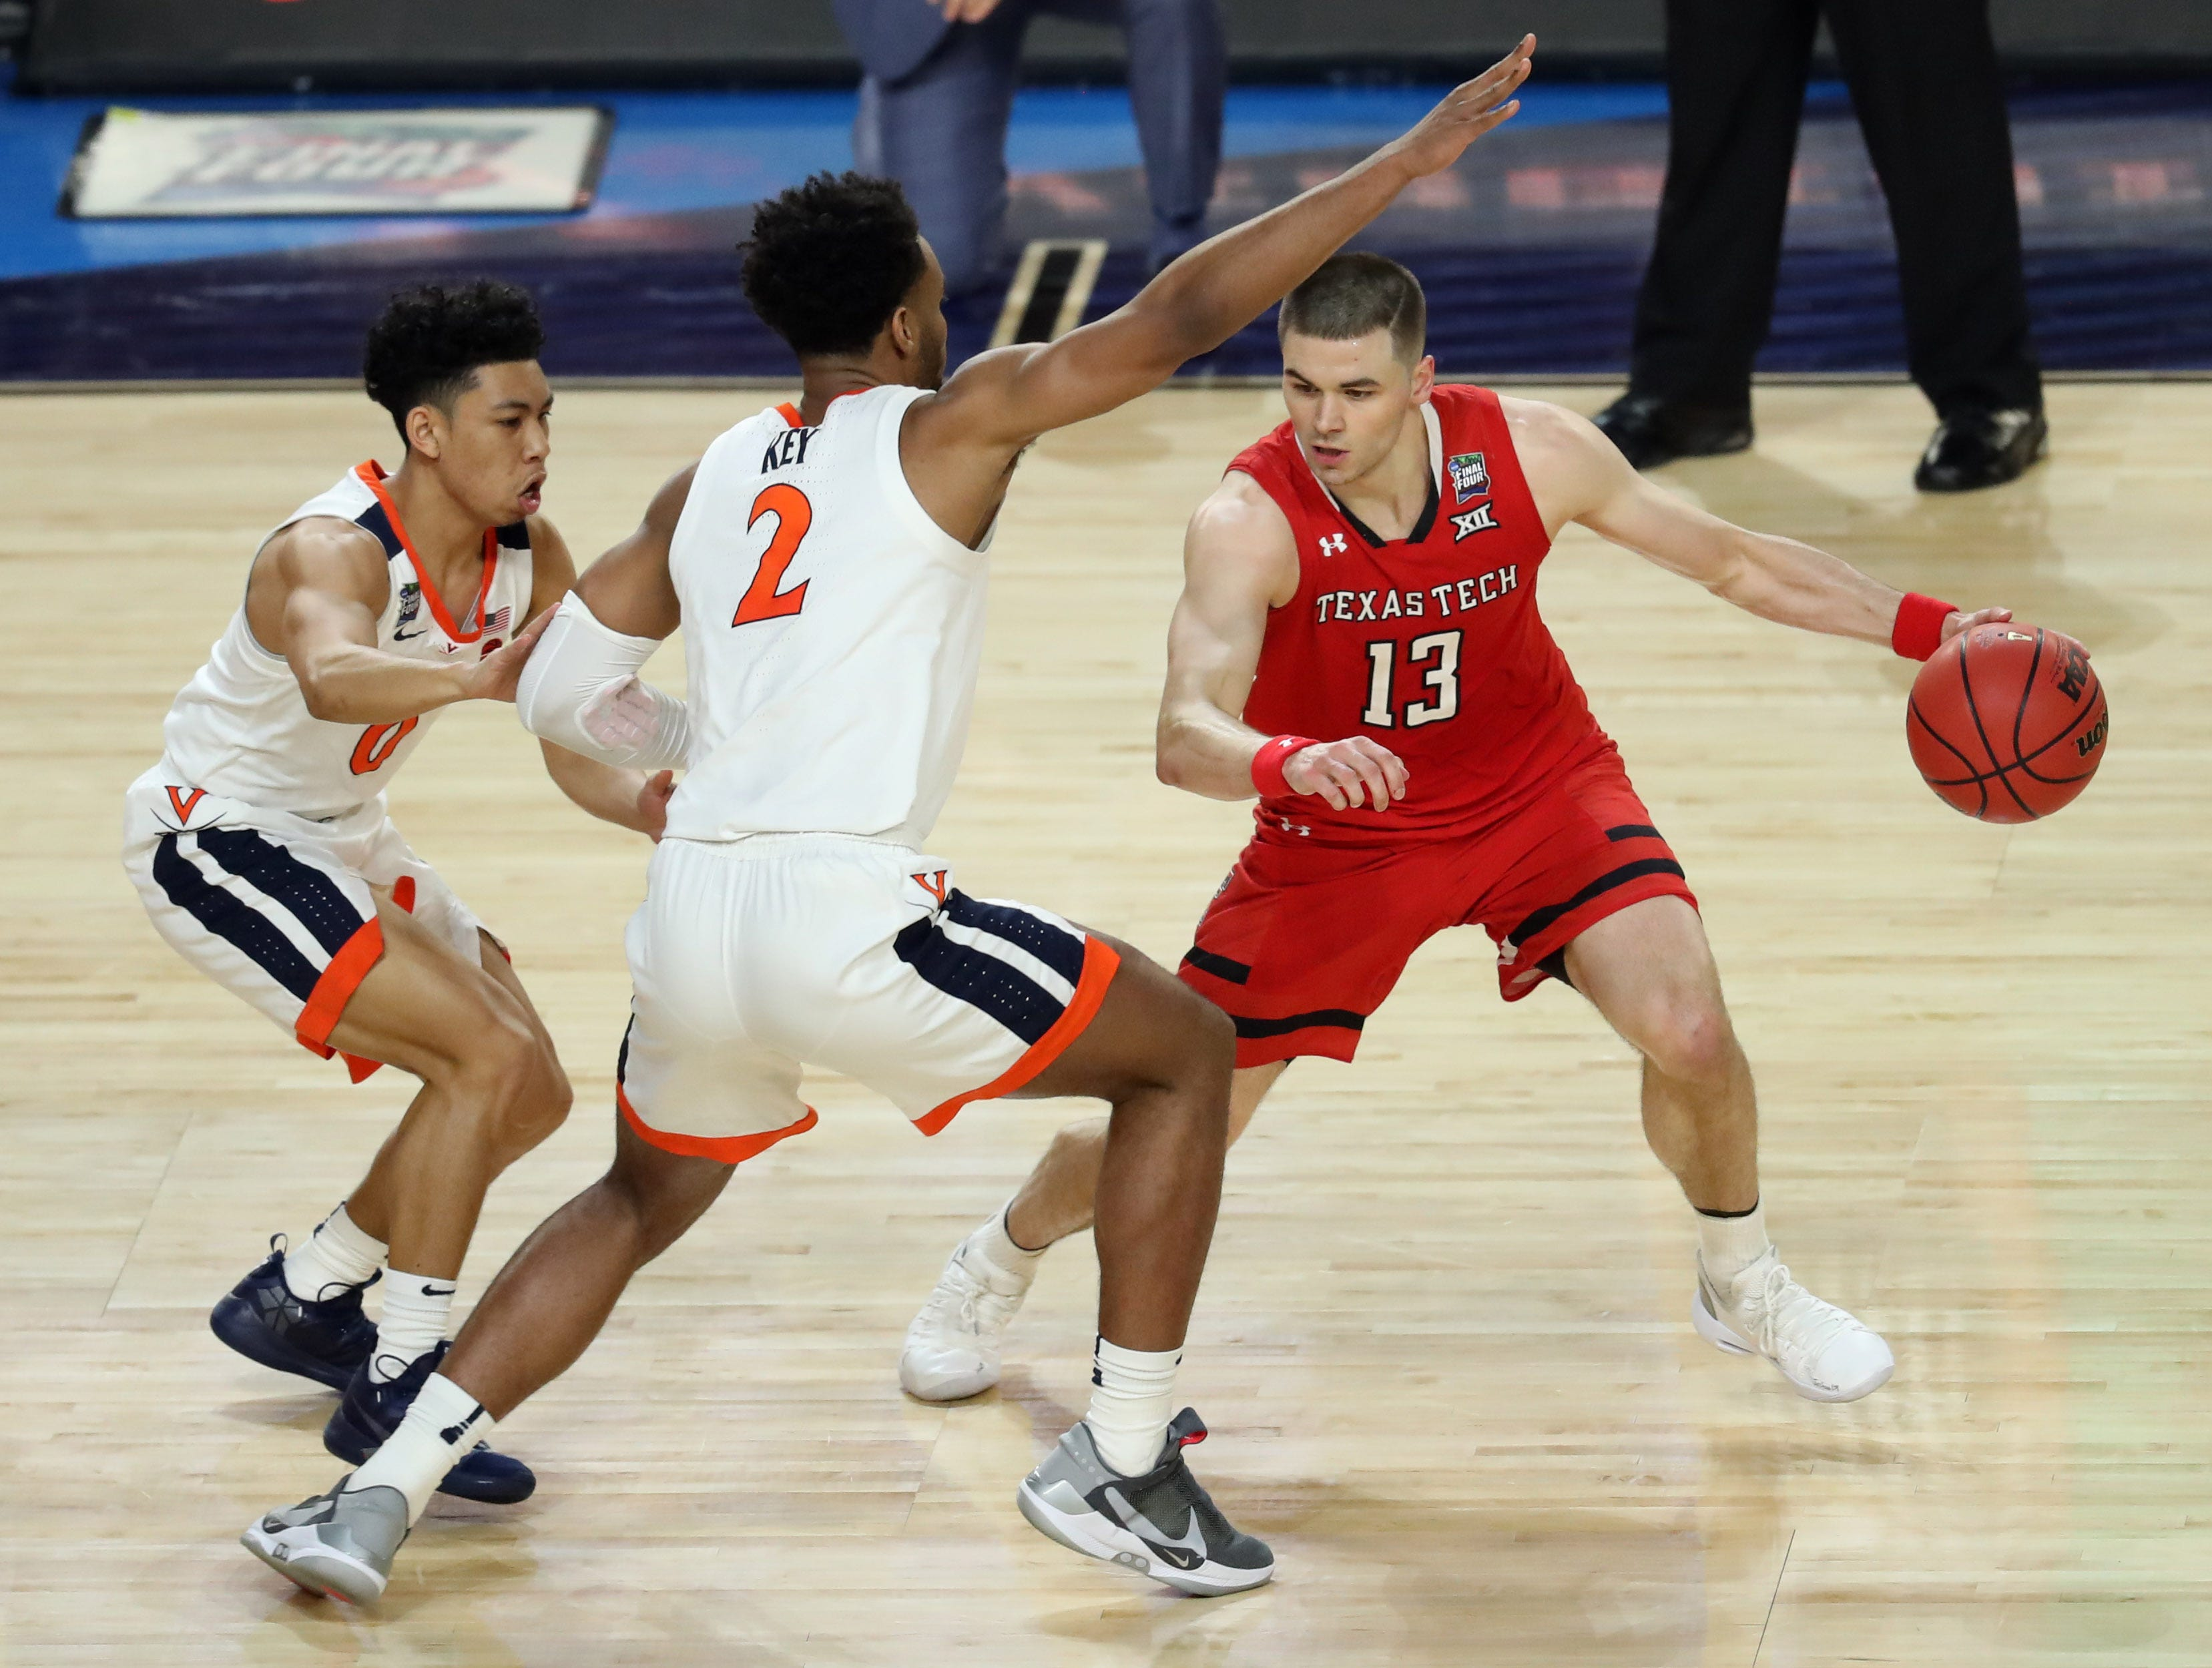 Live: Virginia and Texas Tech in overtime of the national championship game